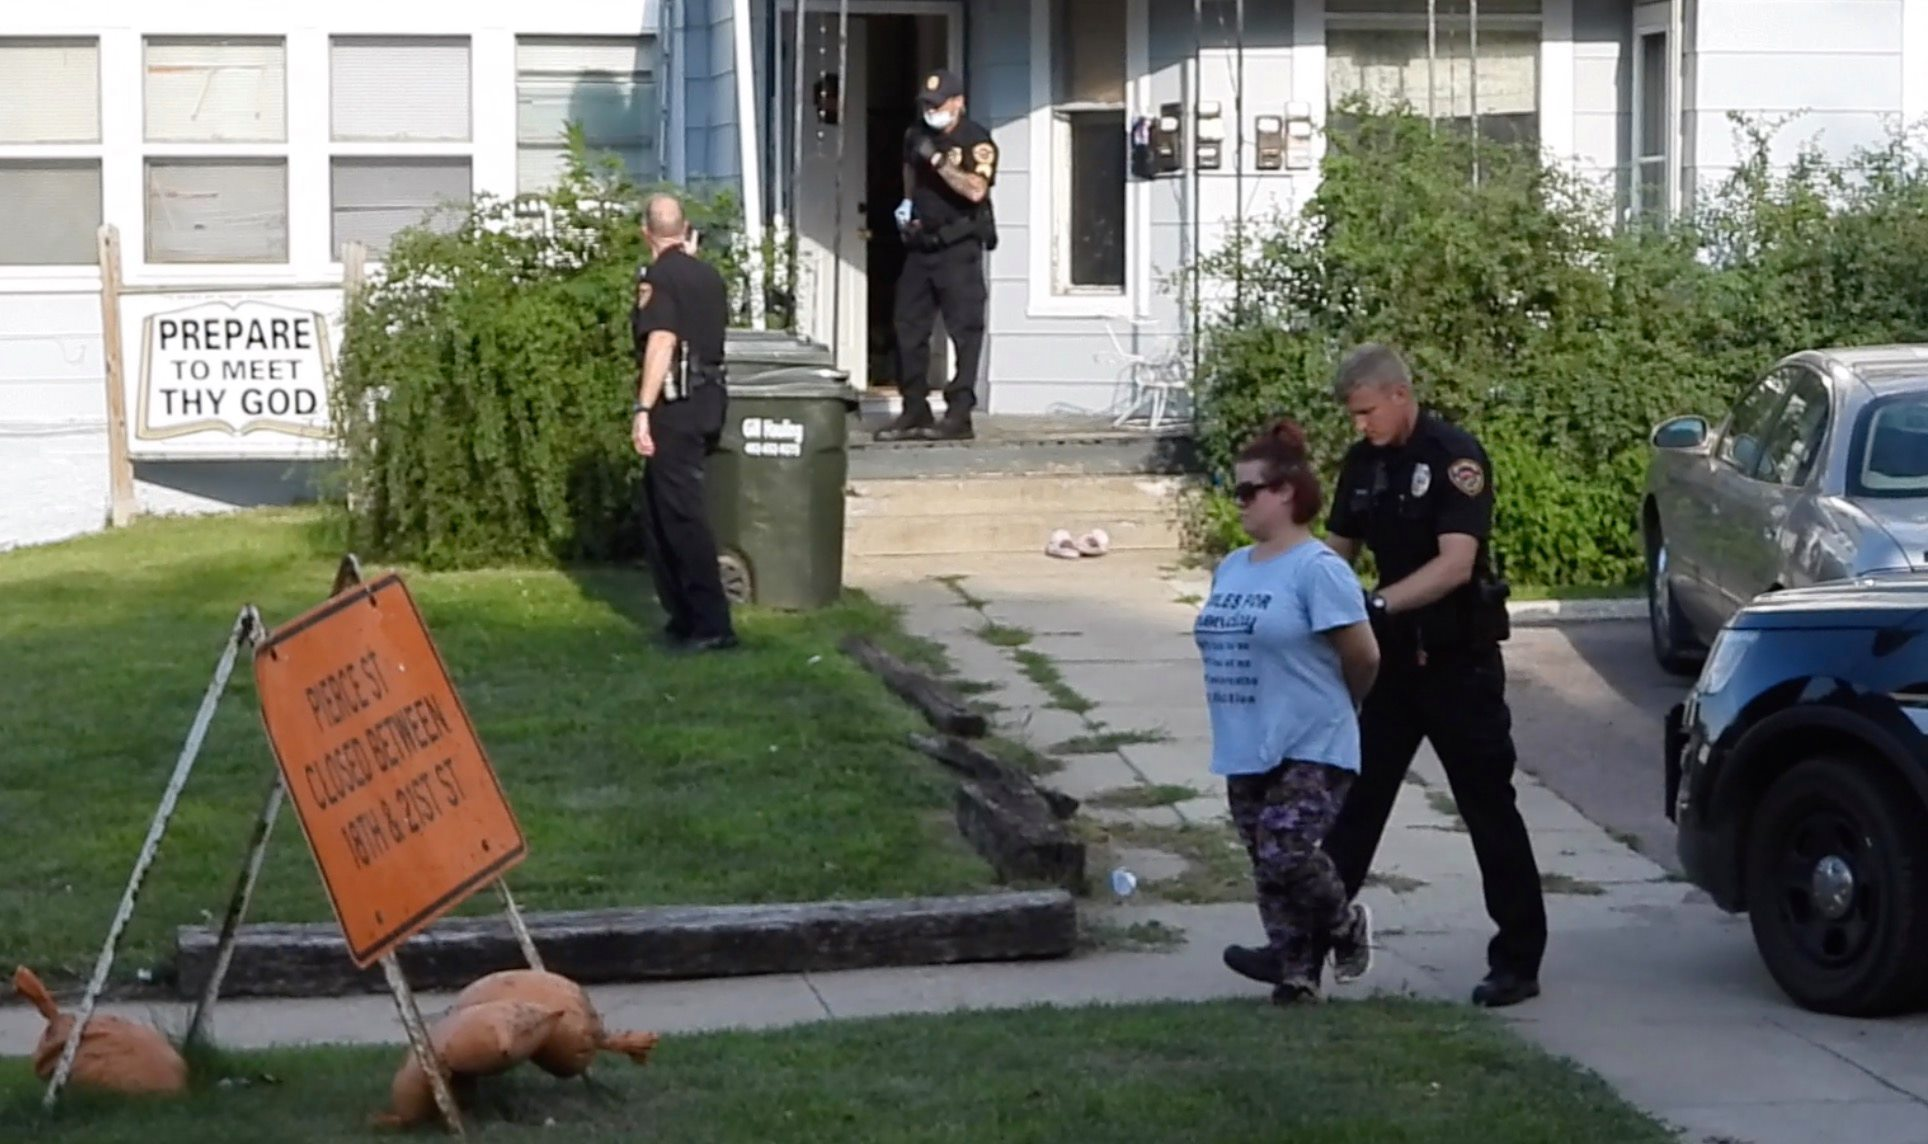 Woman arrested and another sent to hospital after neighborhood dispute on Douglas St in Sioux City